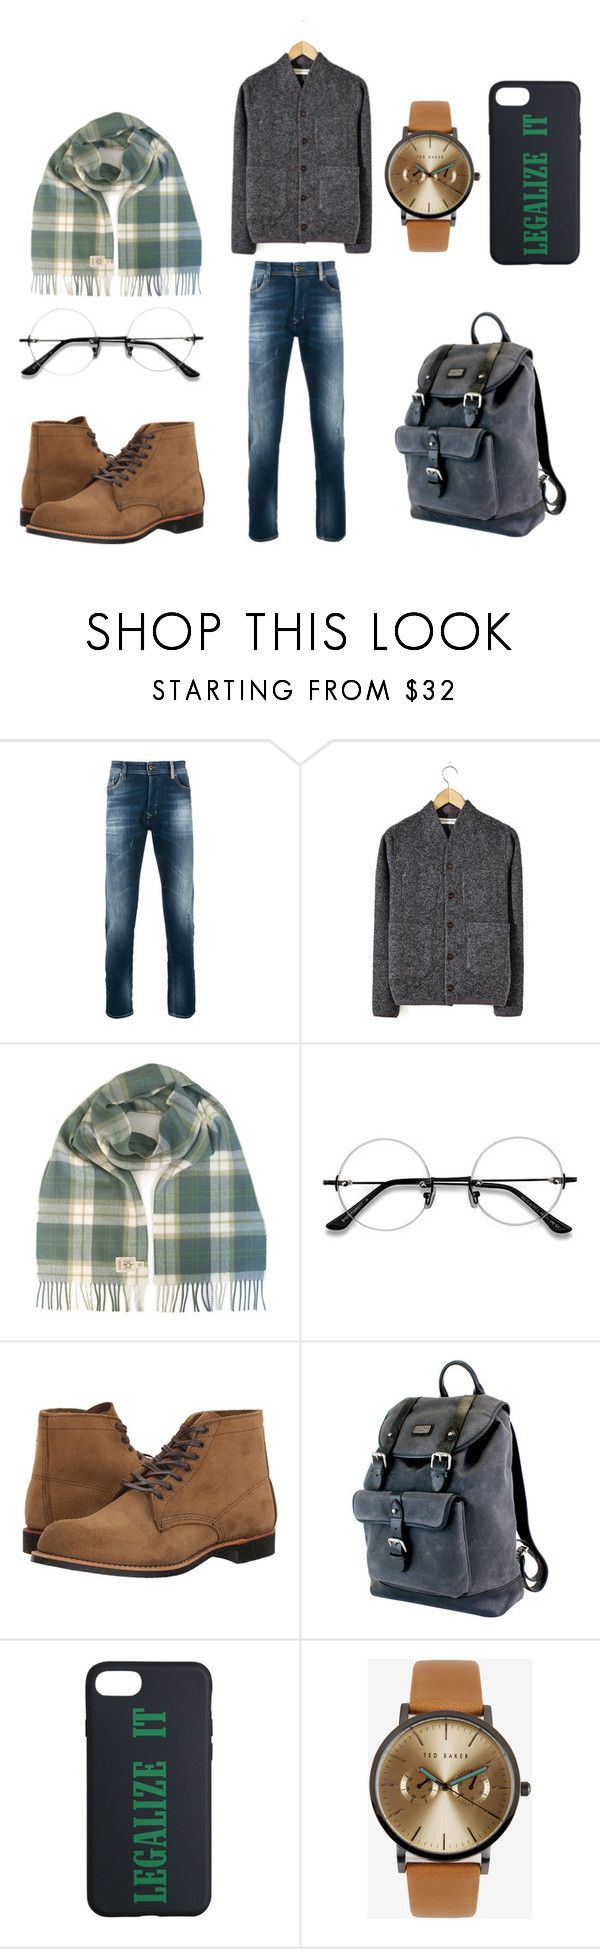 """""""Winter"""" by arammatagi on Polyvore featuring Diesel, EyeBuyDirect.com, Red Wing, The British Belt Company, Palm Angels, Ted Baker, men's fashion and menswear"""